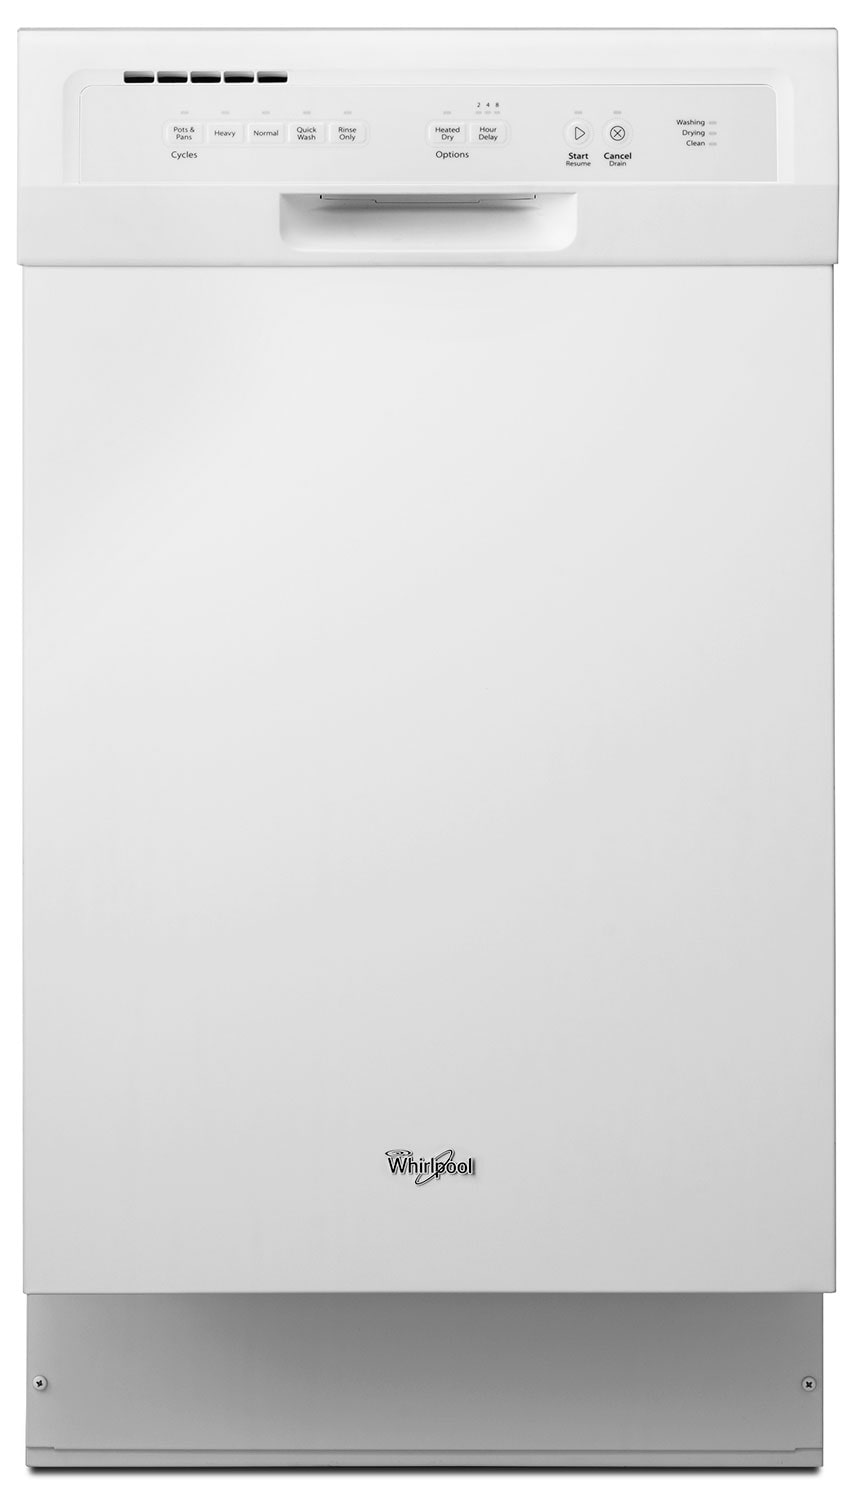 Clean-Up - Whirlpool Compact Tall-Tub Dishwasher – WDF518SAFW